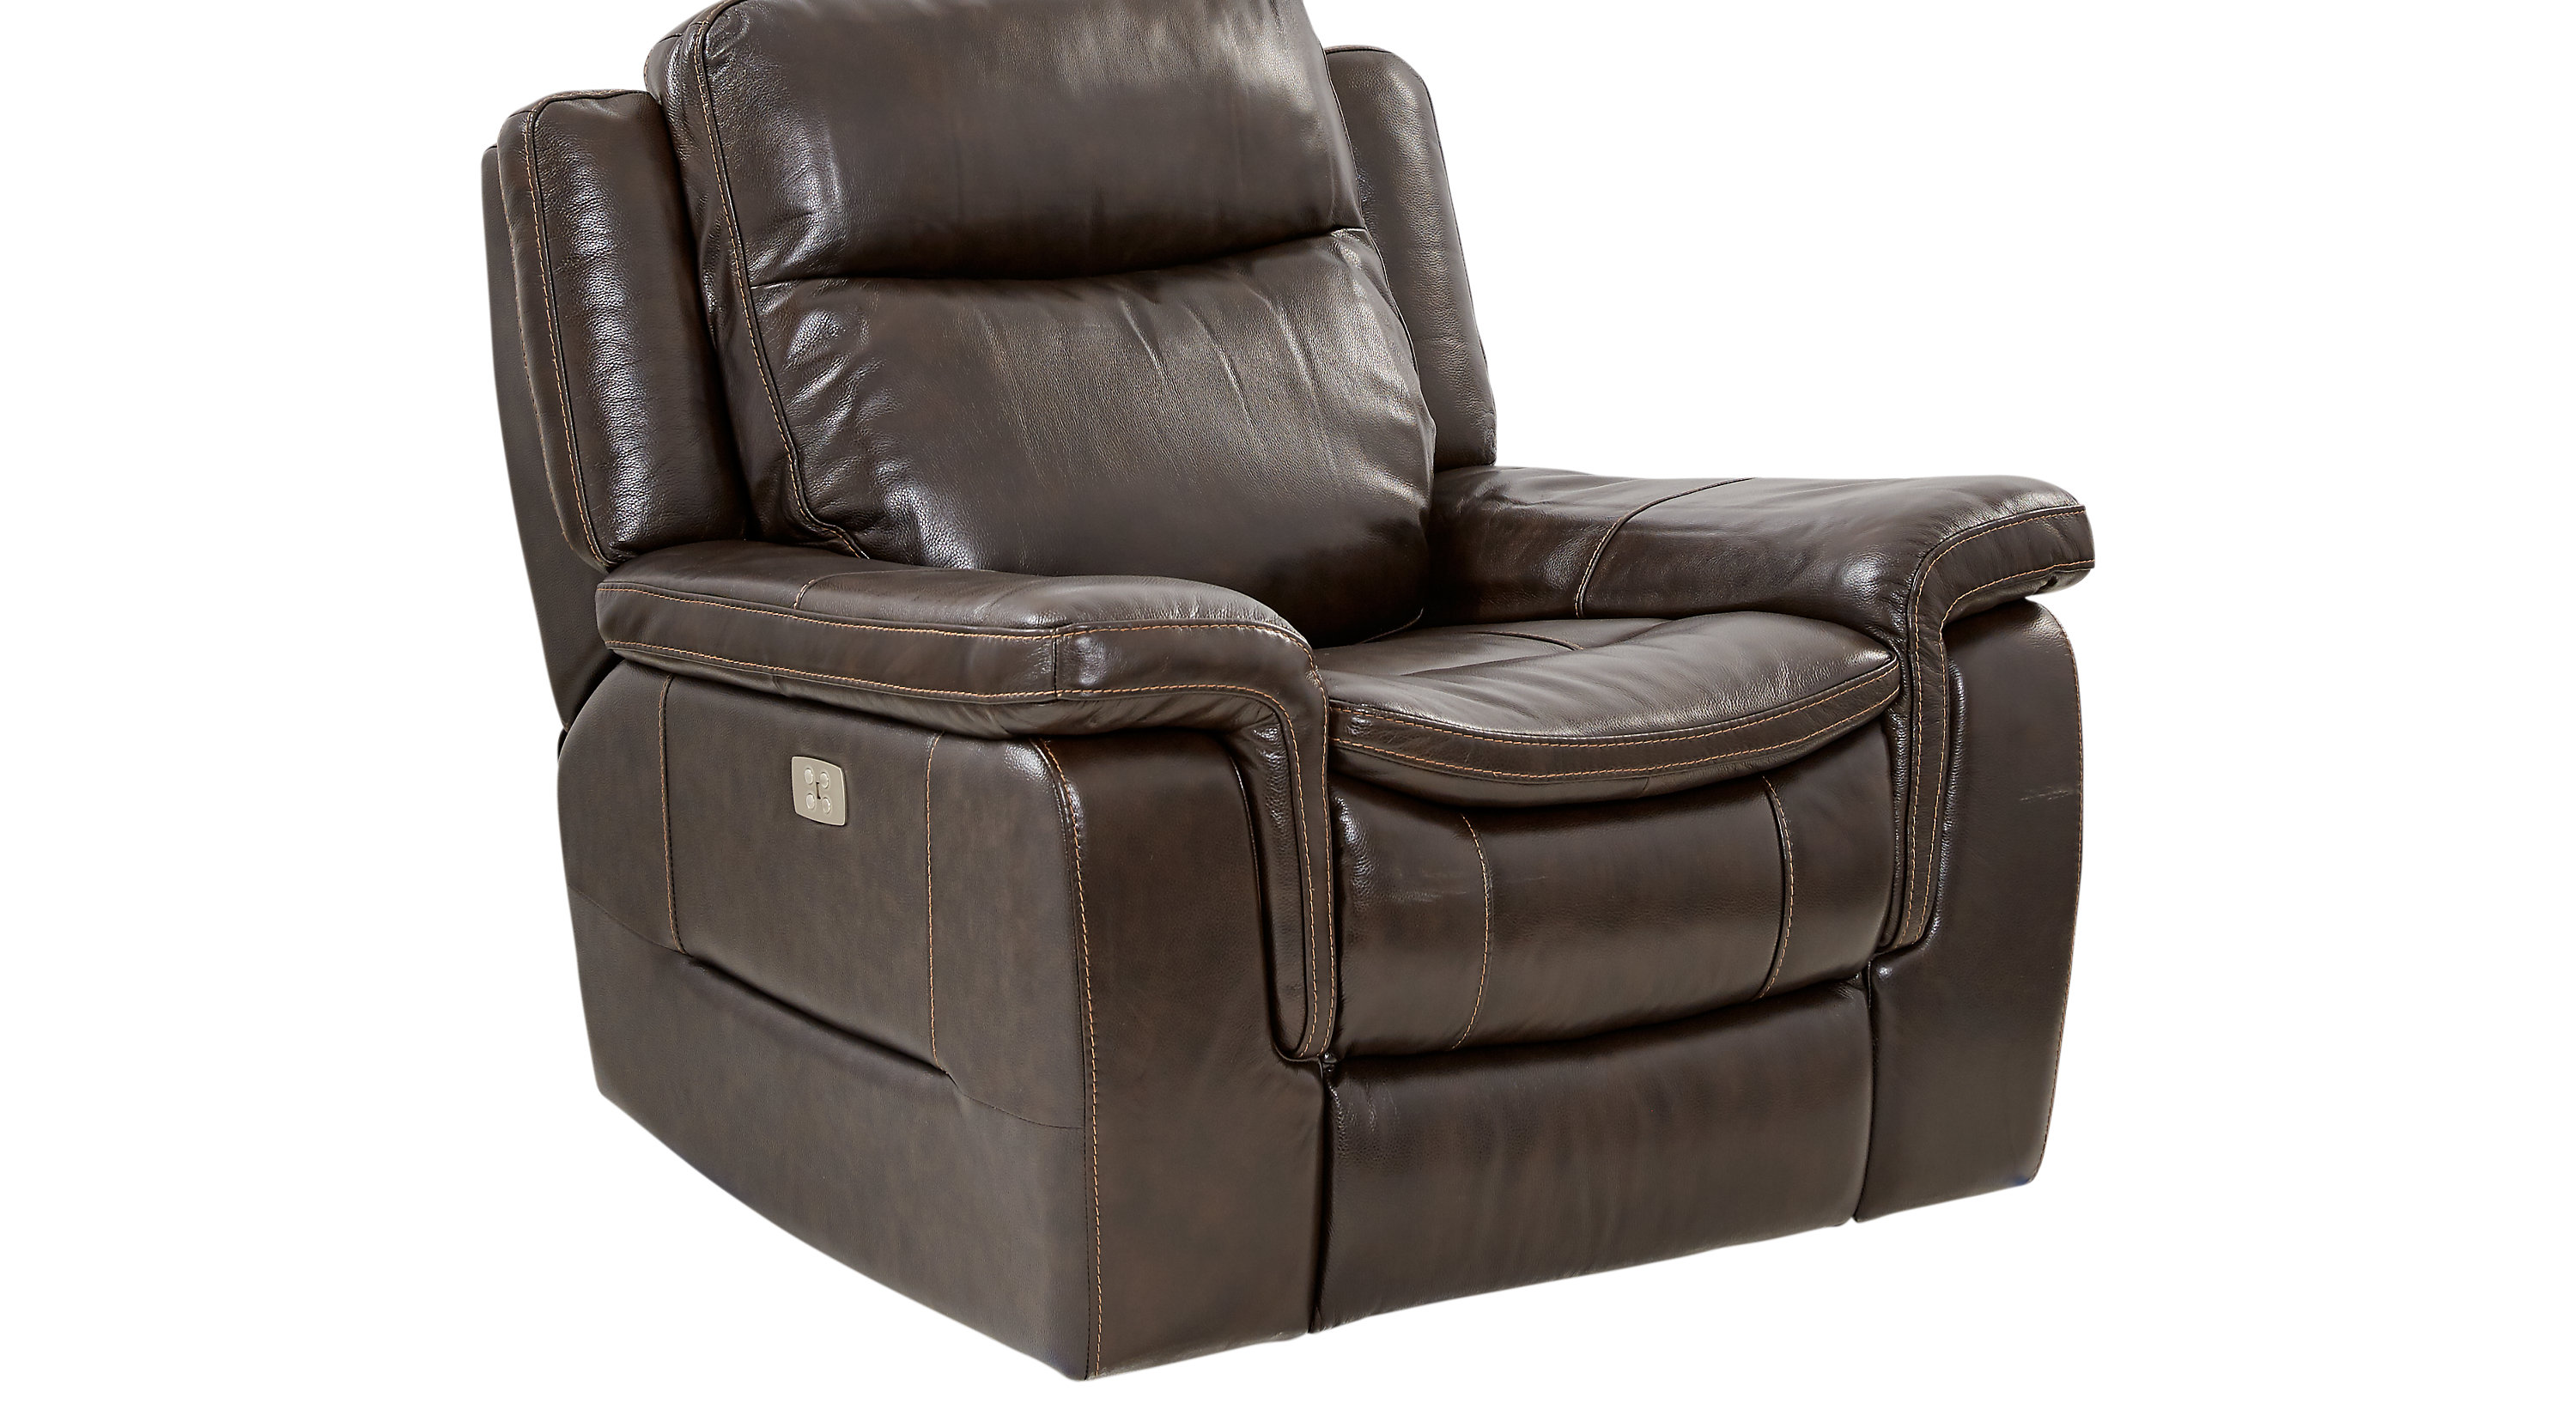 749 99 Milano Brown Leather Power Plus Recliner